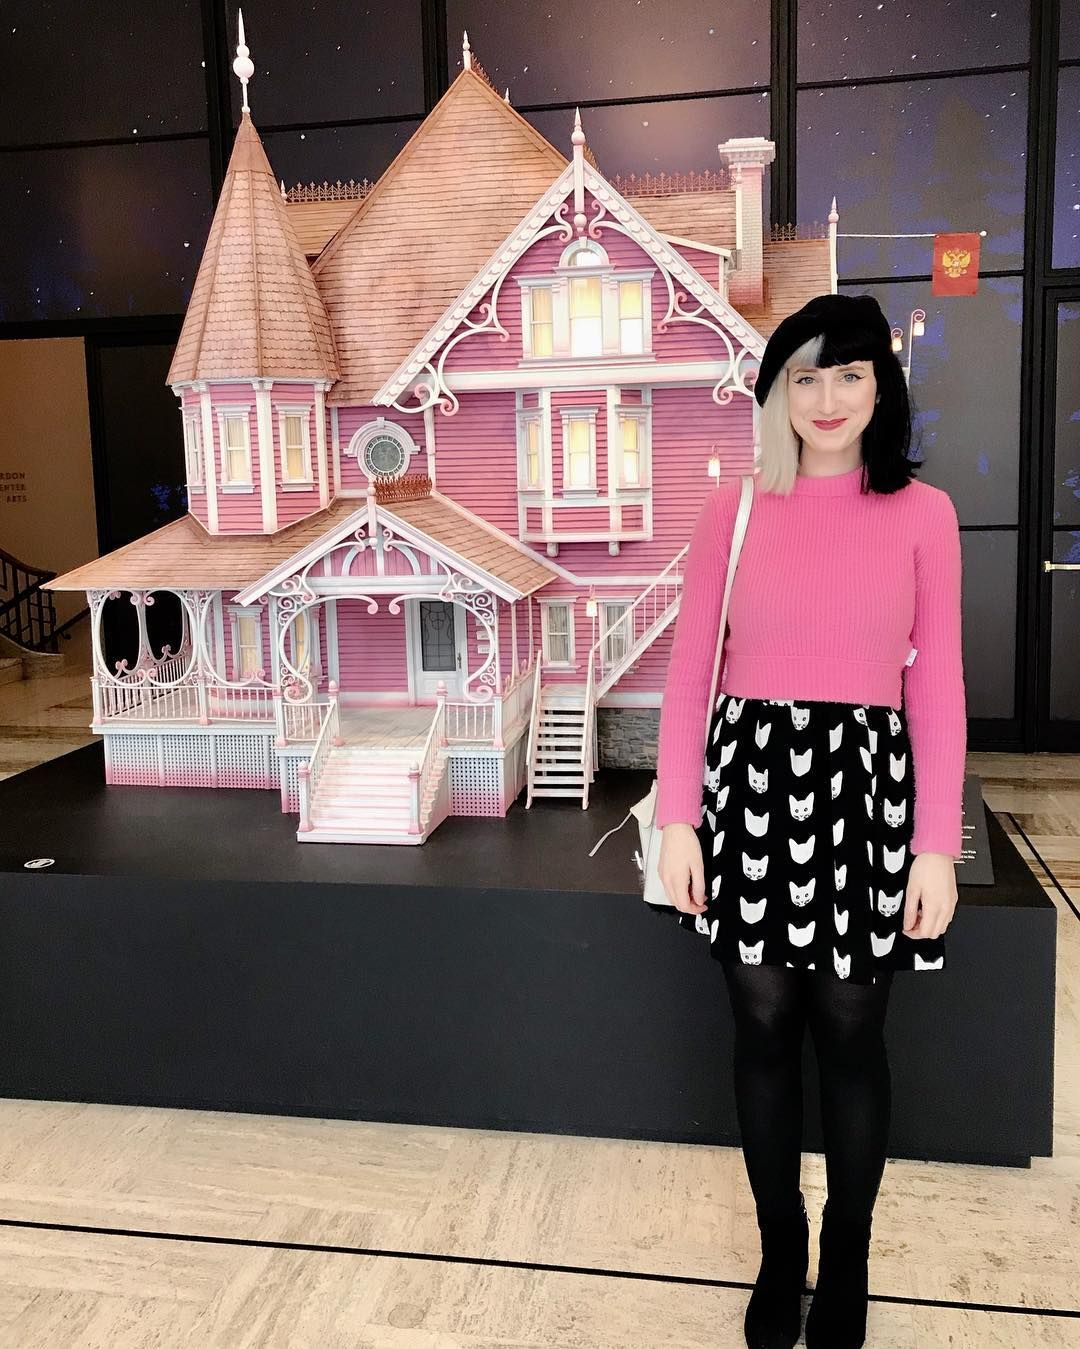 Jason Took Me Too See My Dream House Aka Check Out The Awesome Laika Studios Exhibit At The Art Museum Coraline Aesthetic Coraline Jones Studio